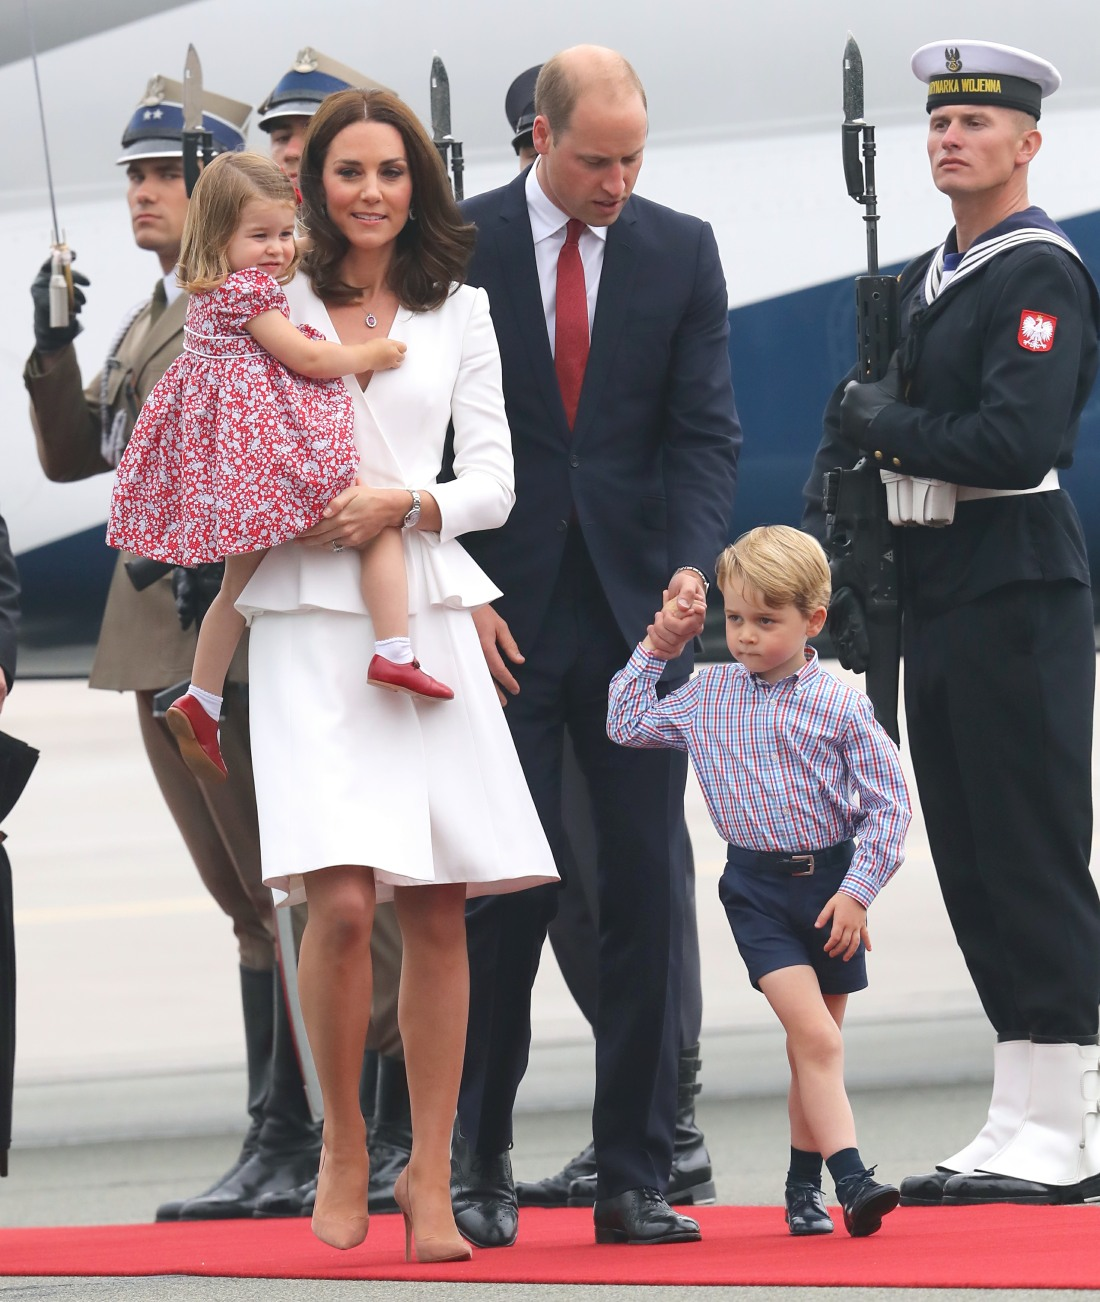 The Duke and Duchess of Cambridge arrive in Poland